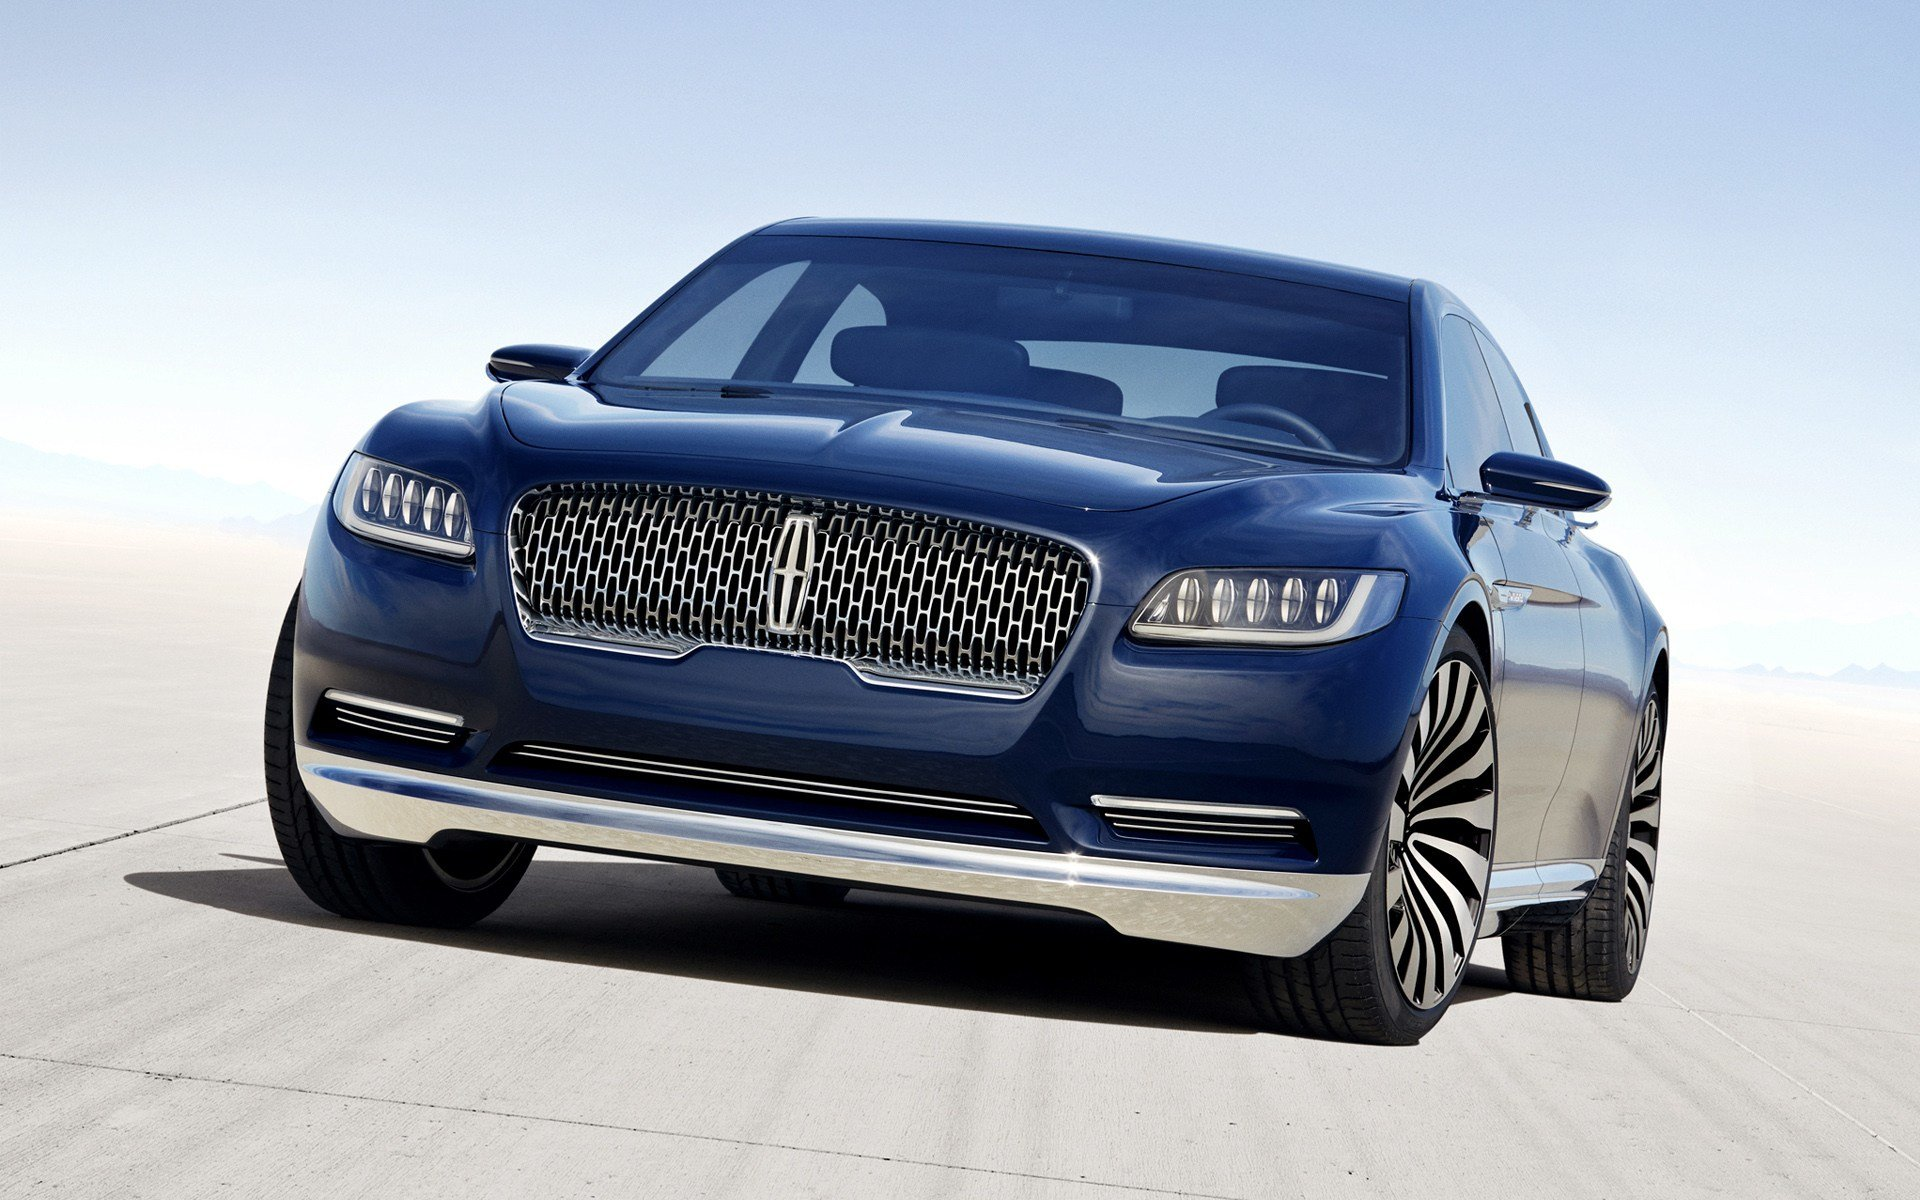 Latest 2016 Lincoln Continental Concept Wallpaper Hd Car Free Download